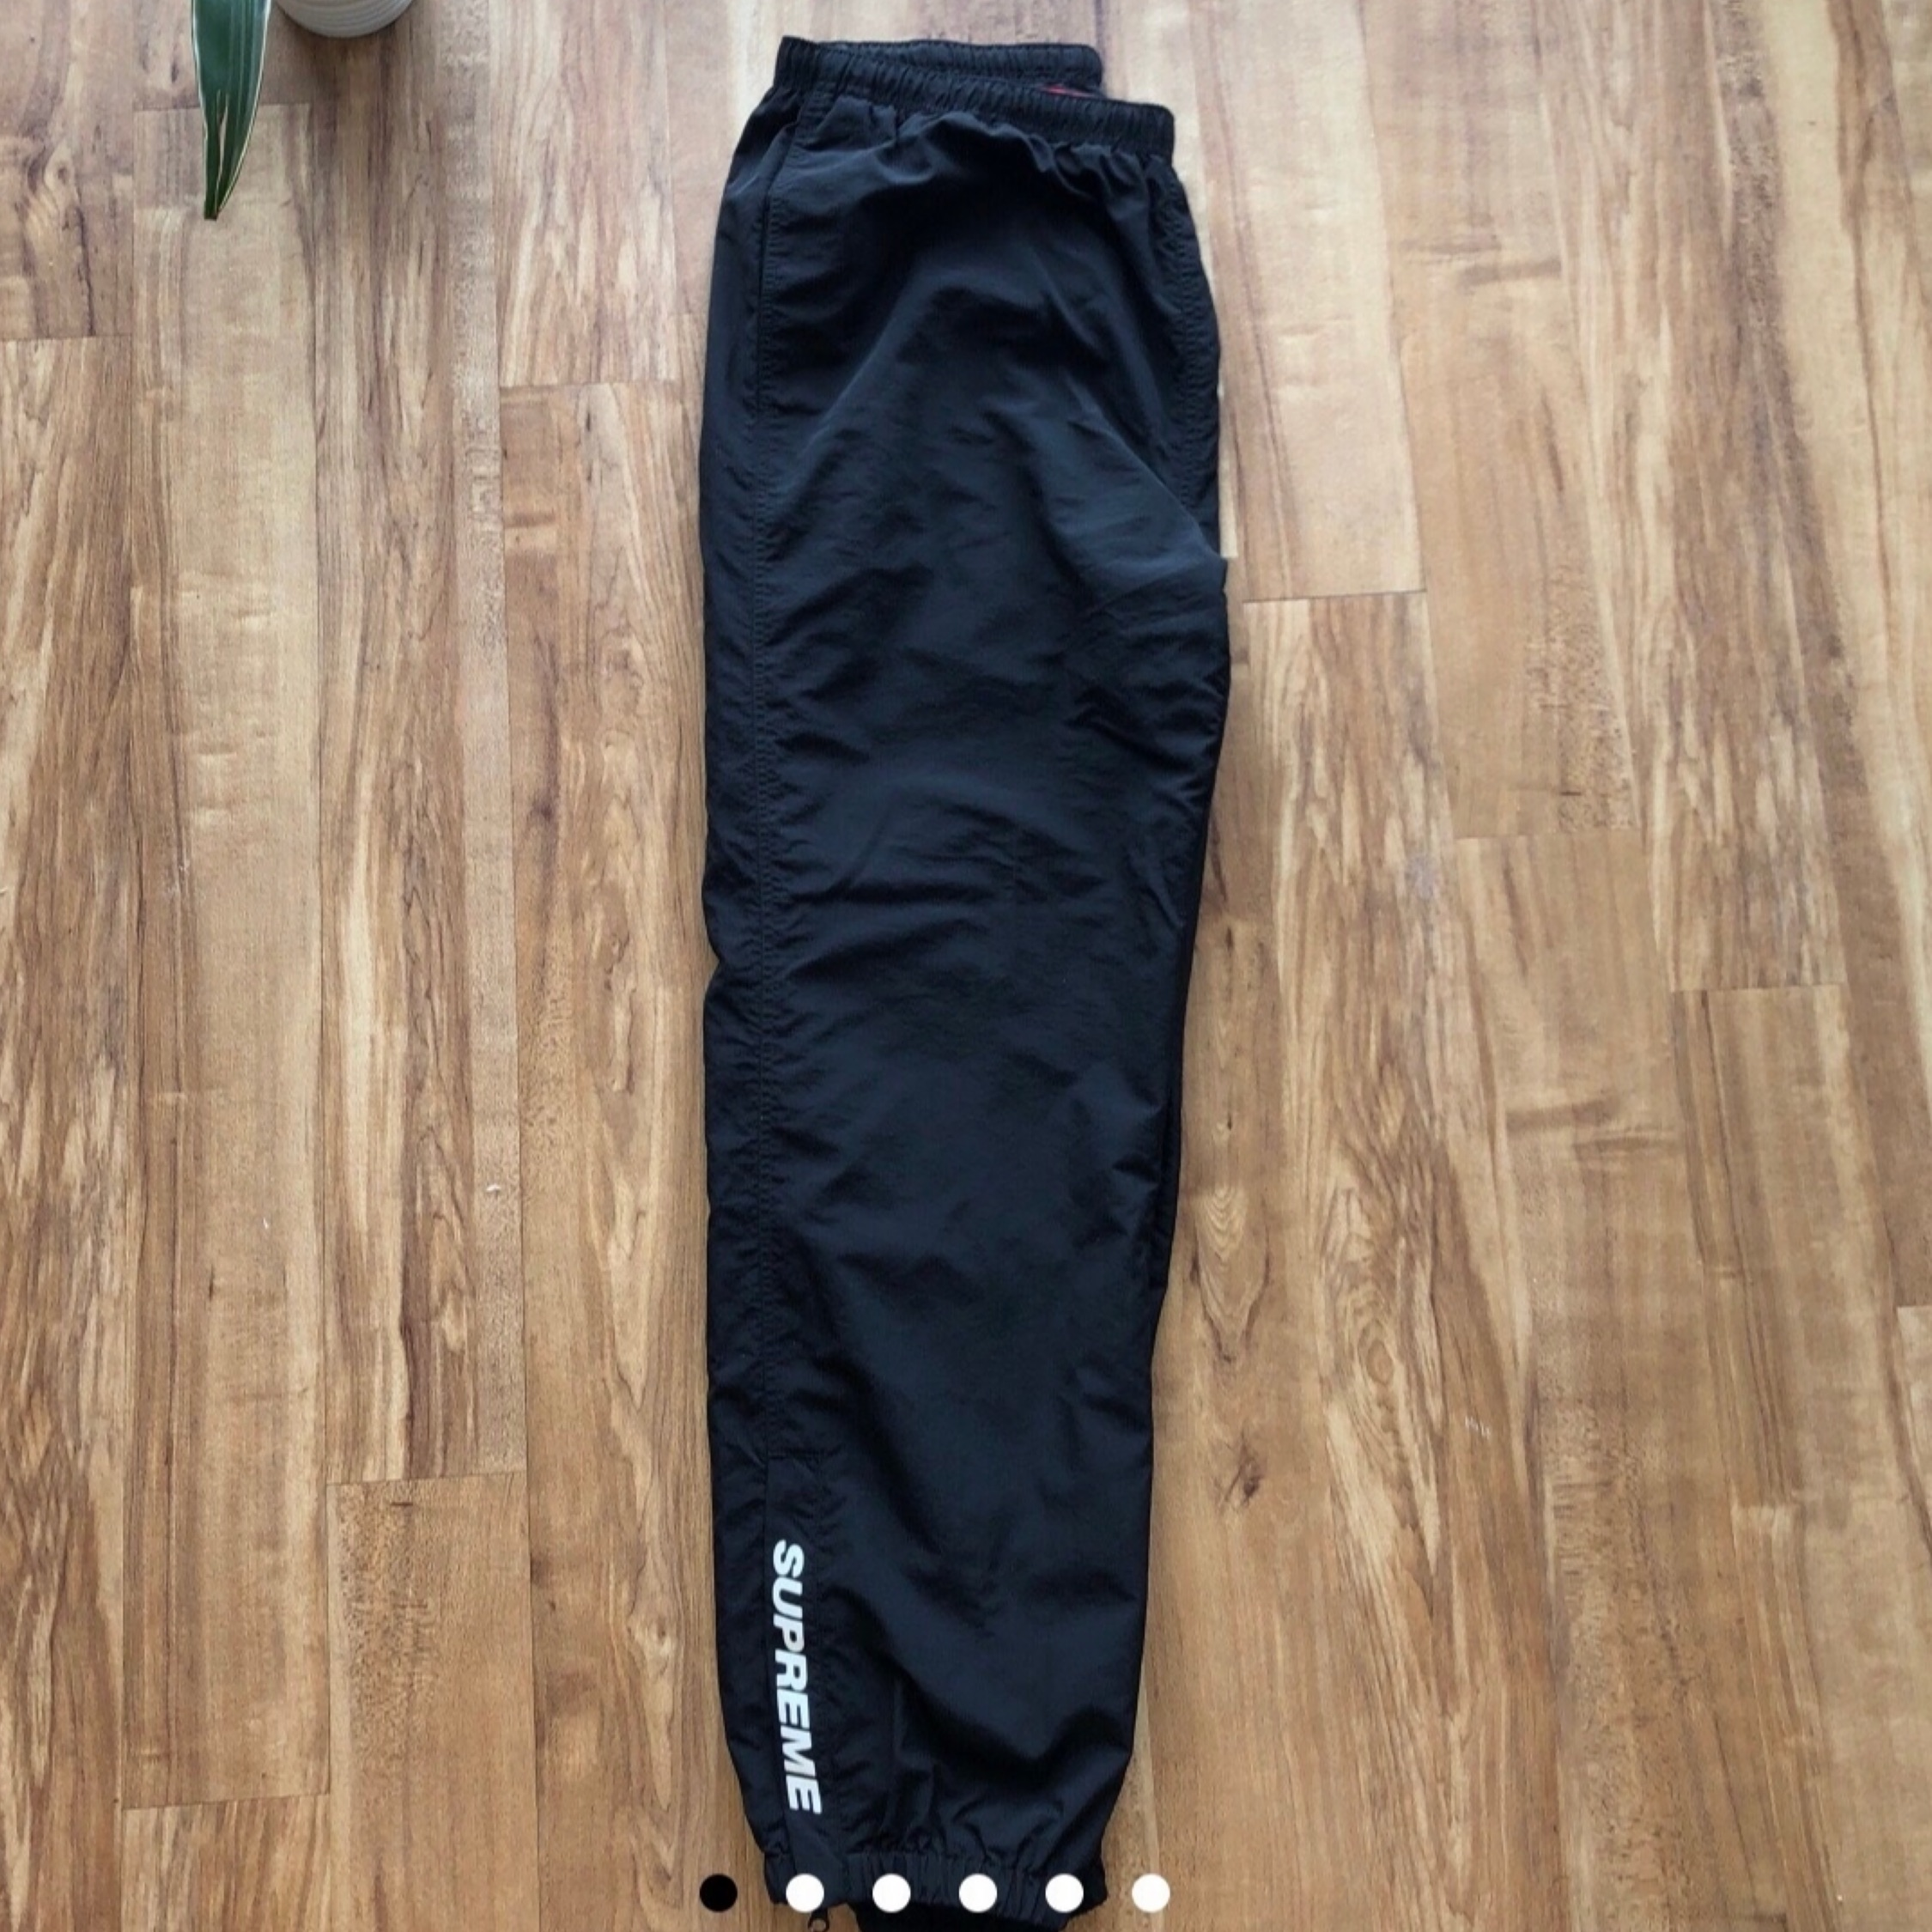 Supreme Fw18 Black Warm Up Track Pants